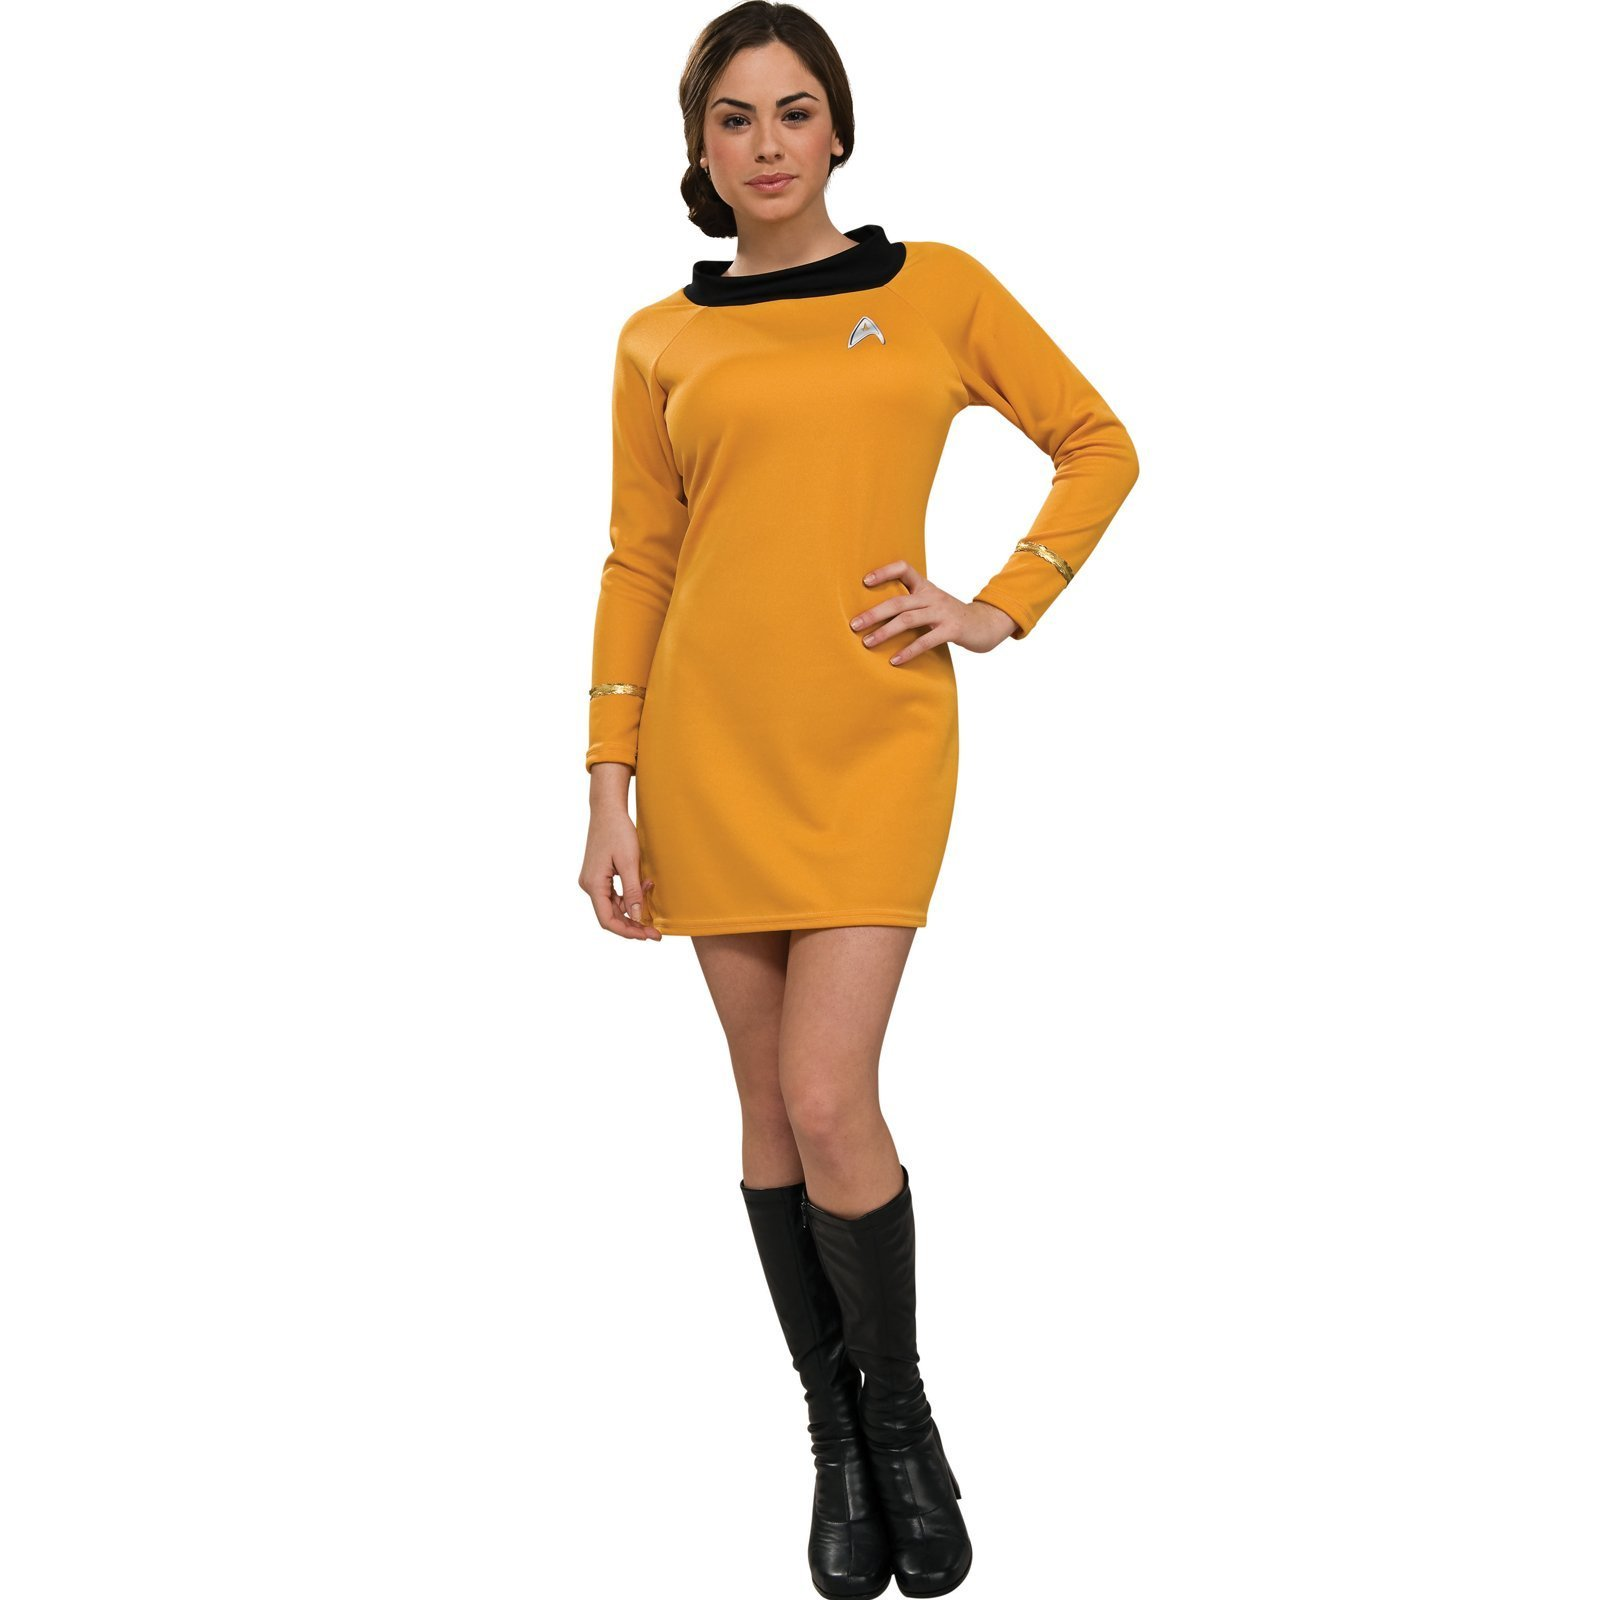 Rubies Costumes 180028 Star Trek Classic Gold Dress Deluxe Adult Costume - Go...